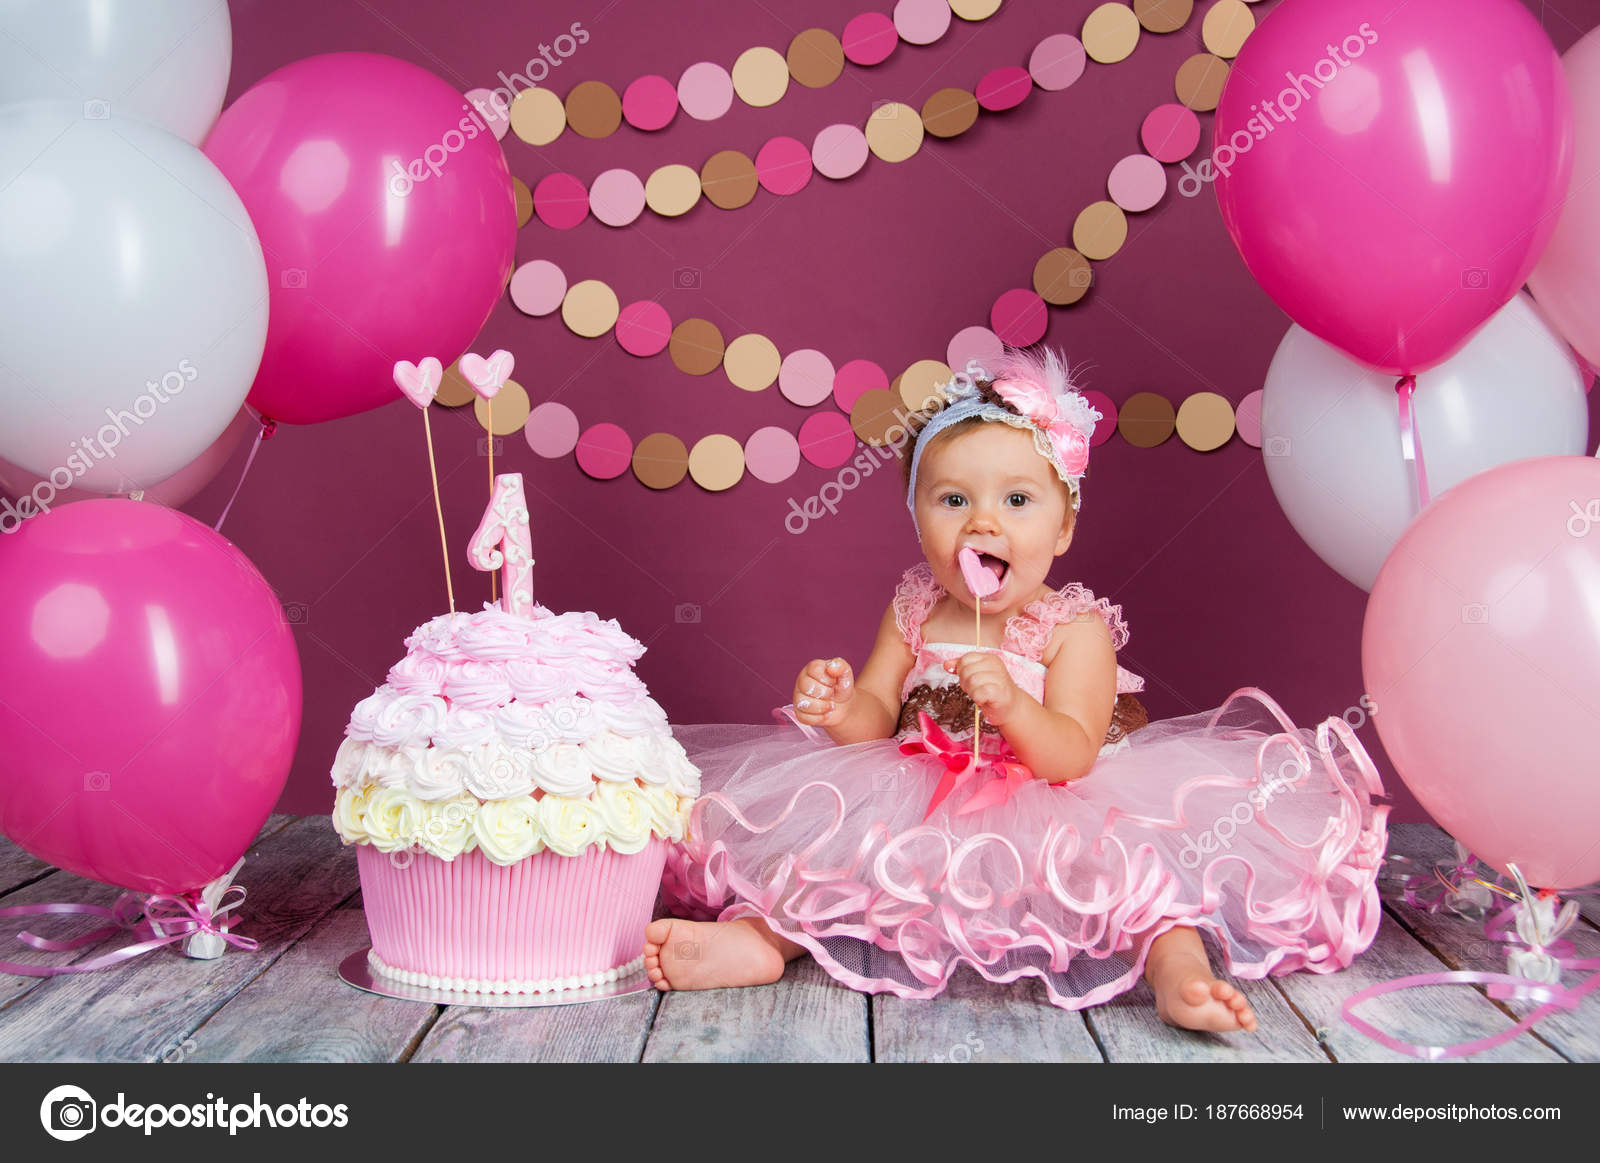 the little girl s birthday girl was smeared into a cake the first